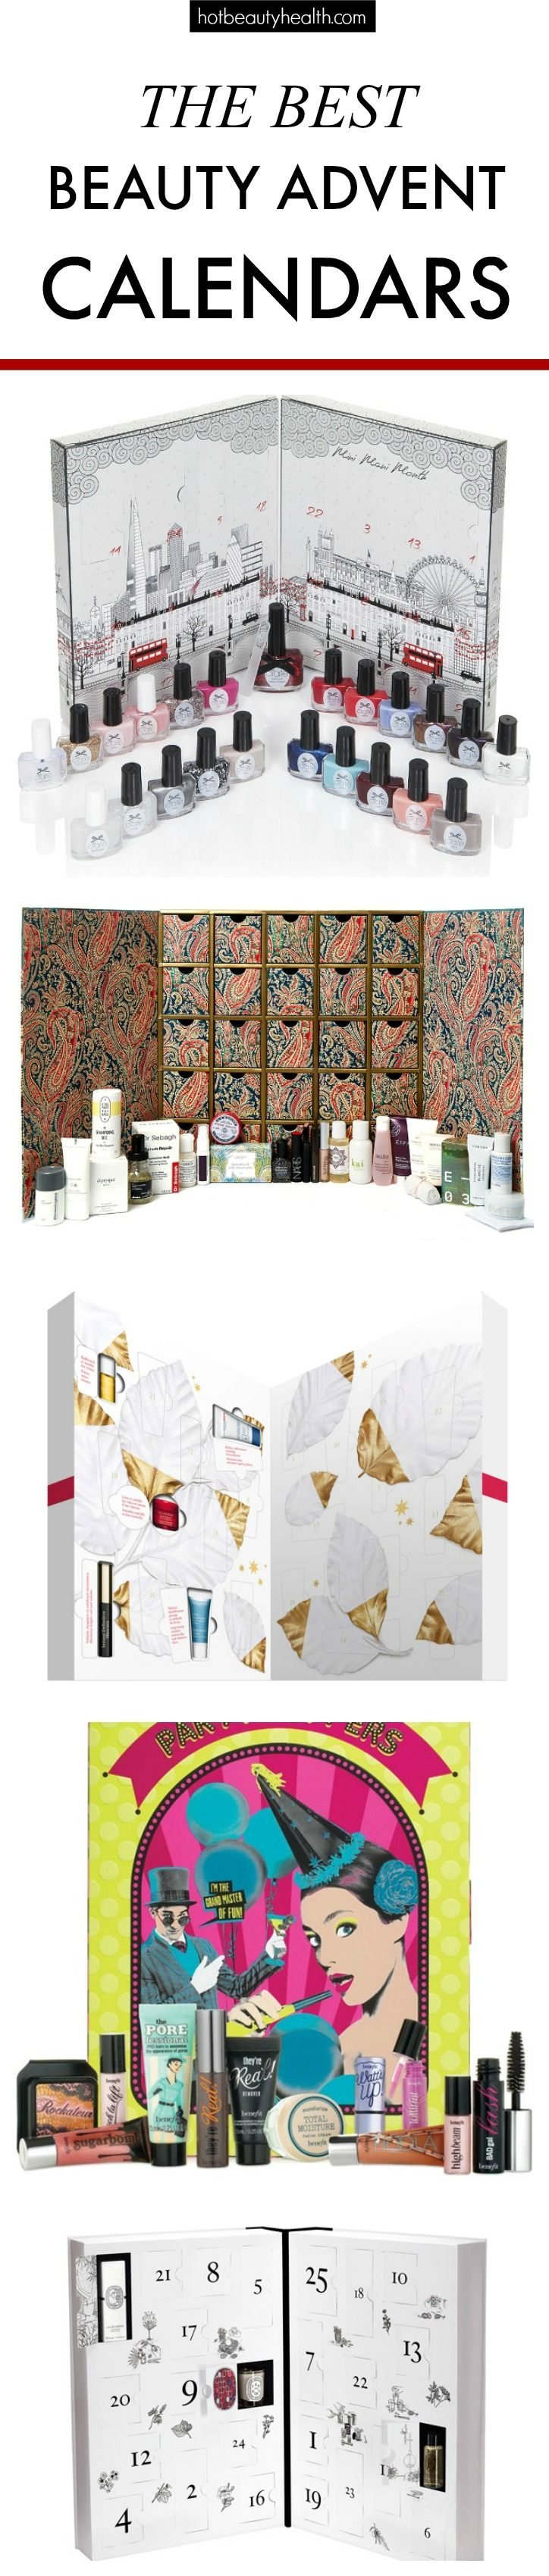 Advent Calendar List Ideas : Best beauty advent calendars for christmas